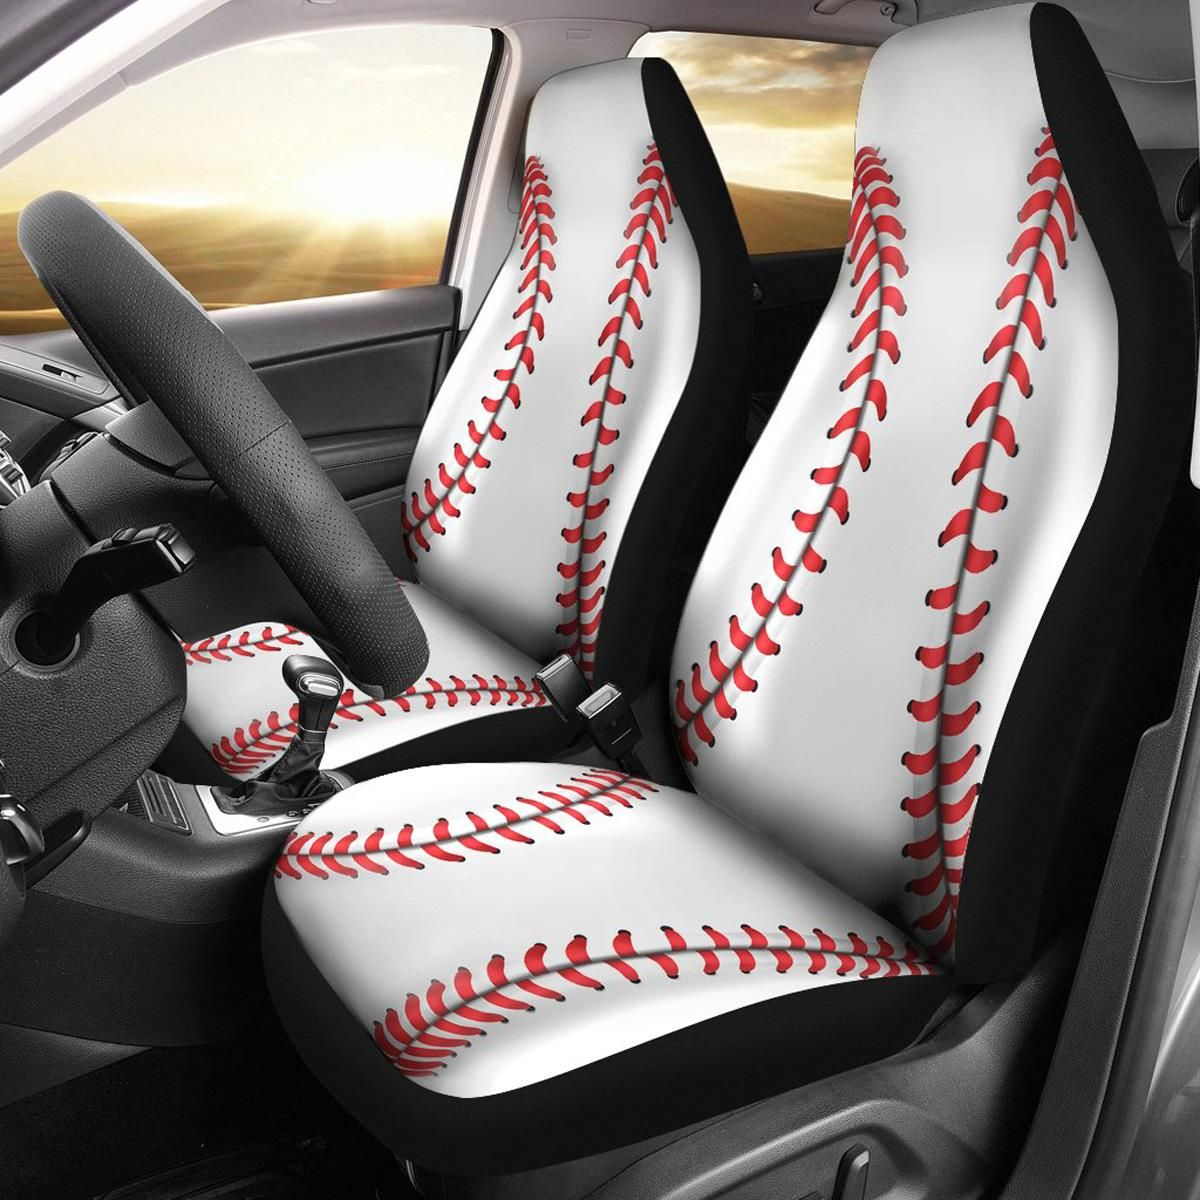 Baseball Car Seat Covers Car Seat Cover Sets Car Seats Carseat Cover